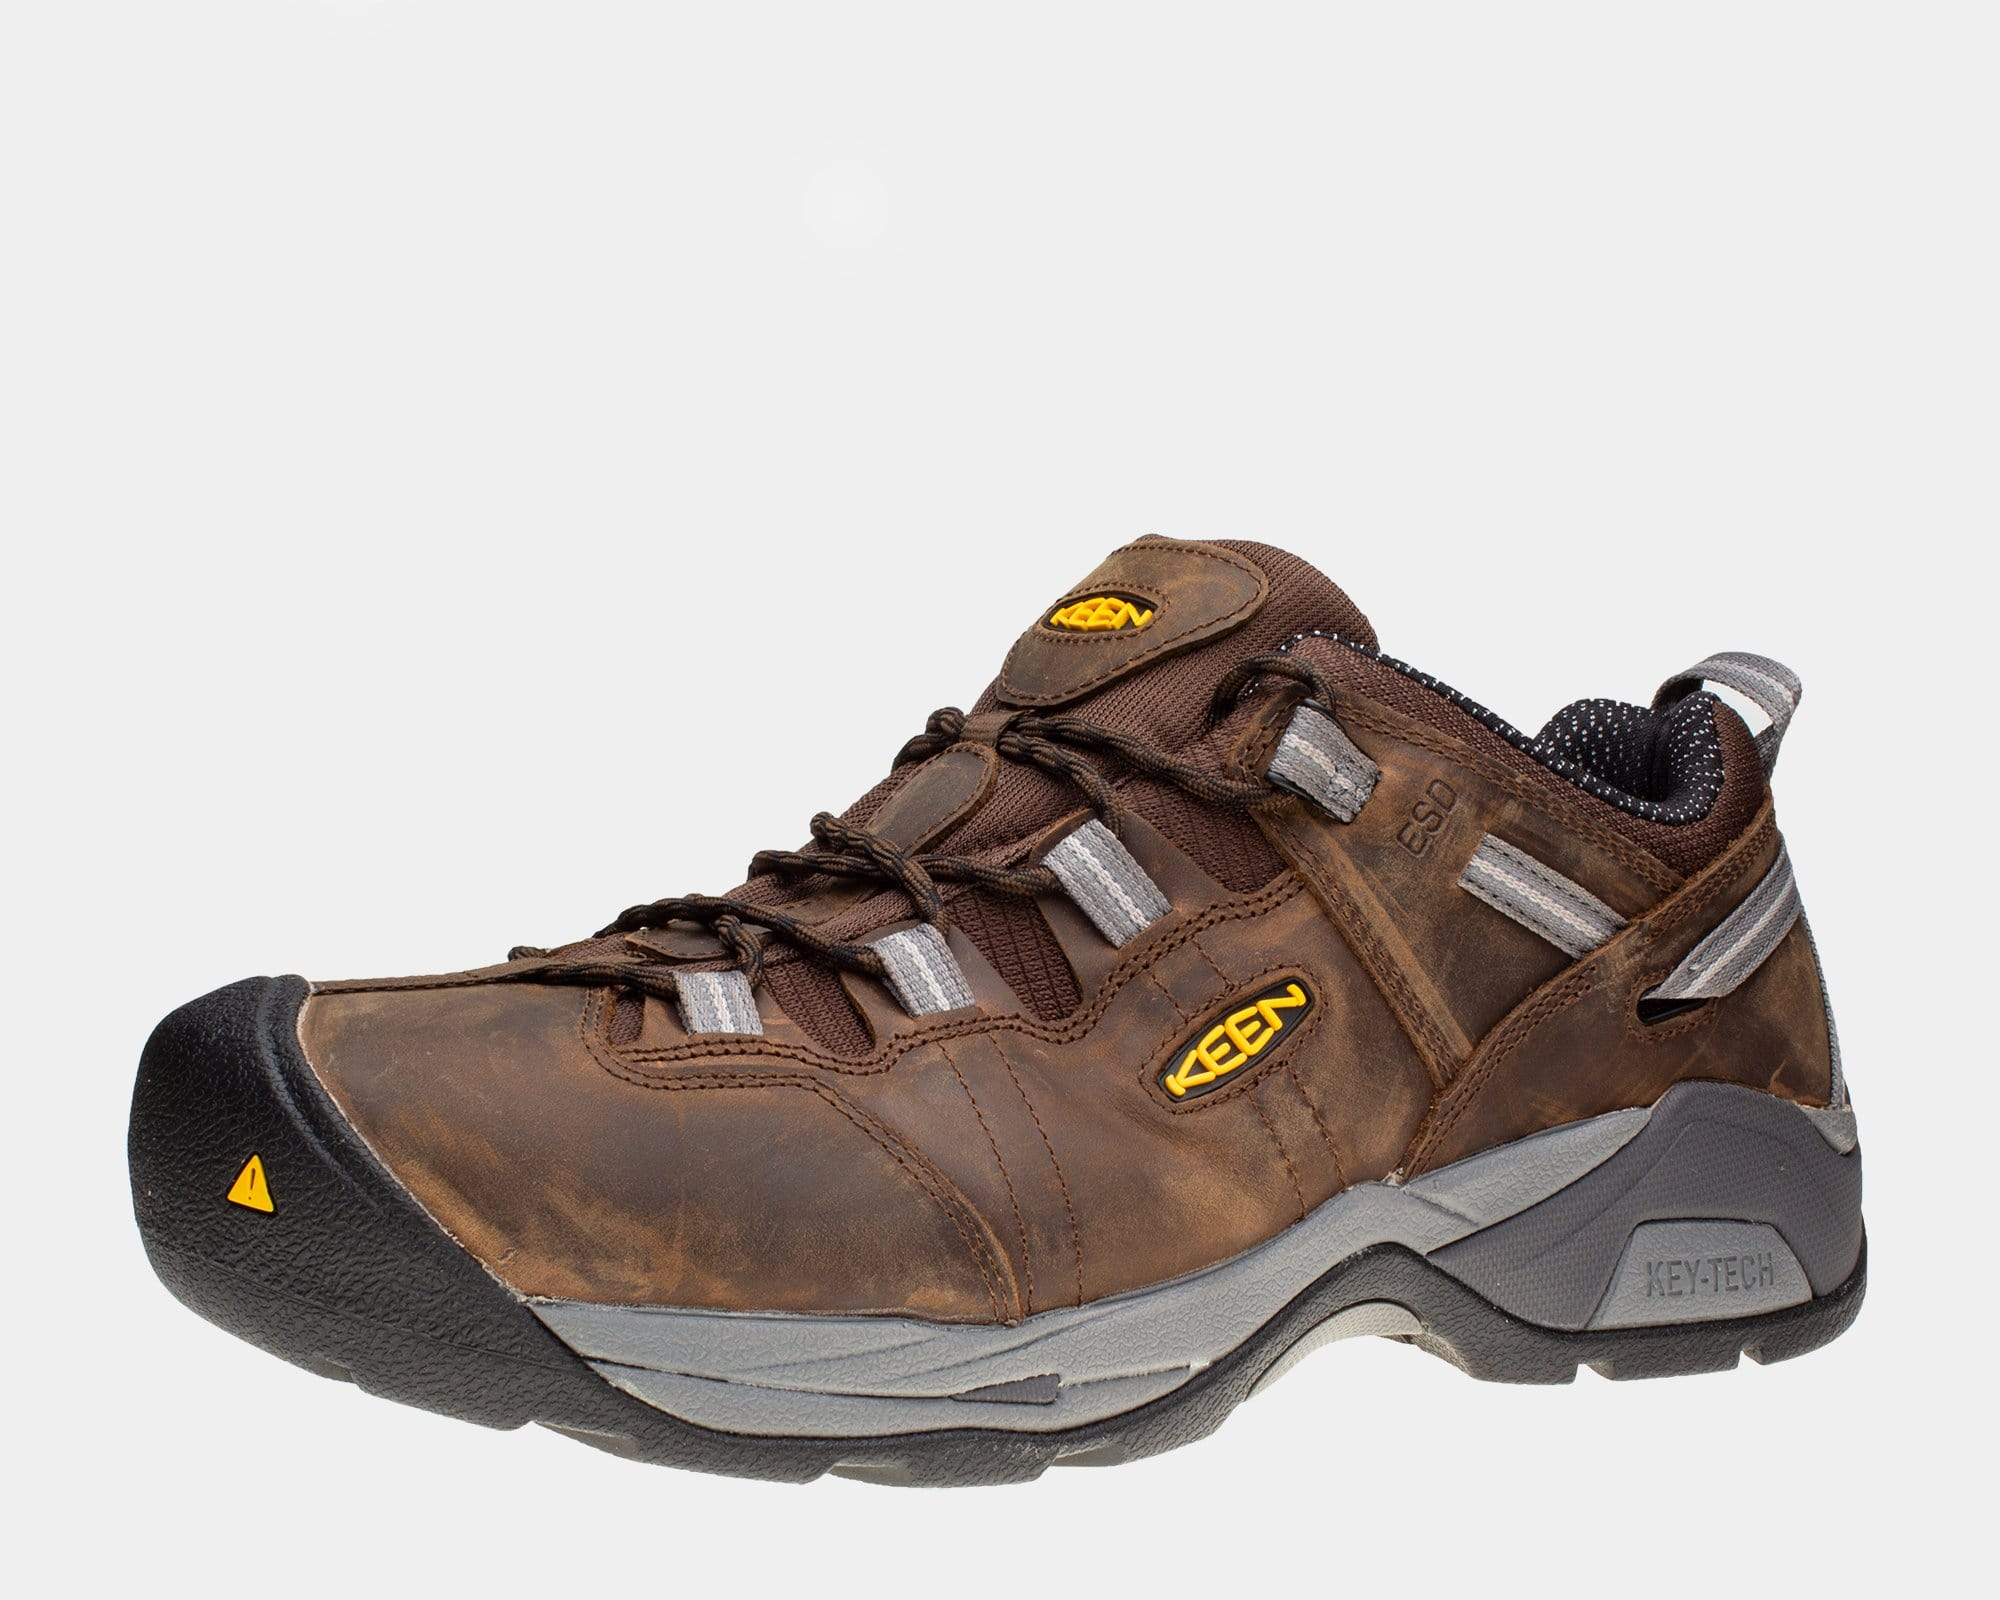 4c5345db17f Keen Detroit XT Steel Toe ESD Work Sneakers - Mens Large Sizes